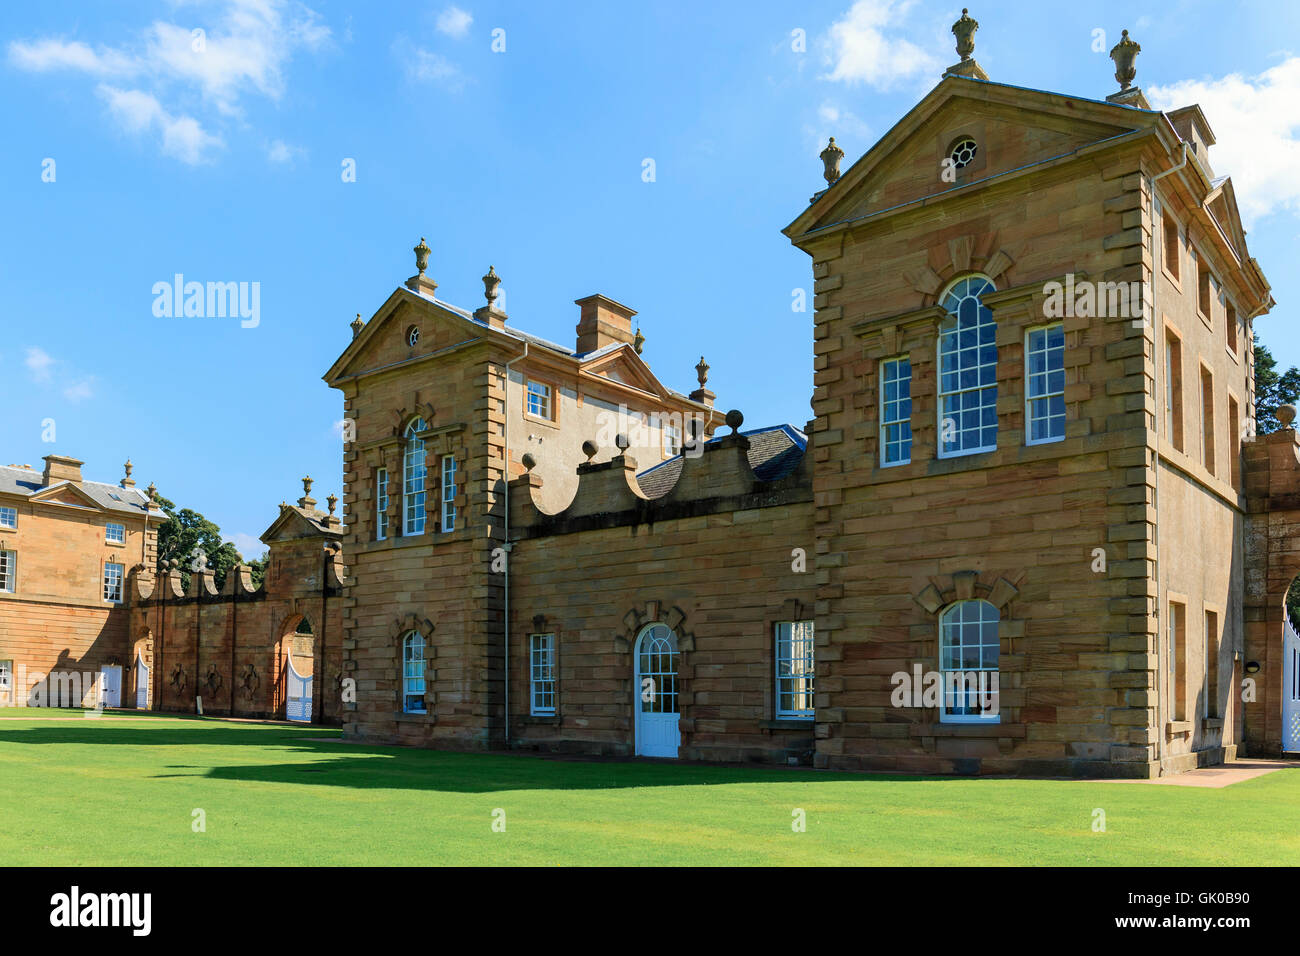 Chatelherault House, near Hamilton, Lanarkshire, 18the century palladian built house, designed by William Adam - Stock Image